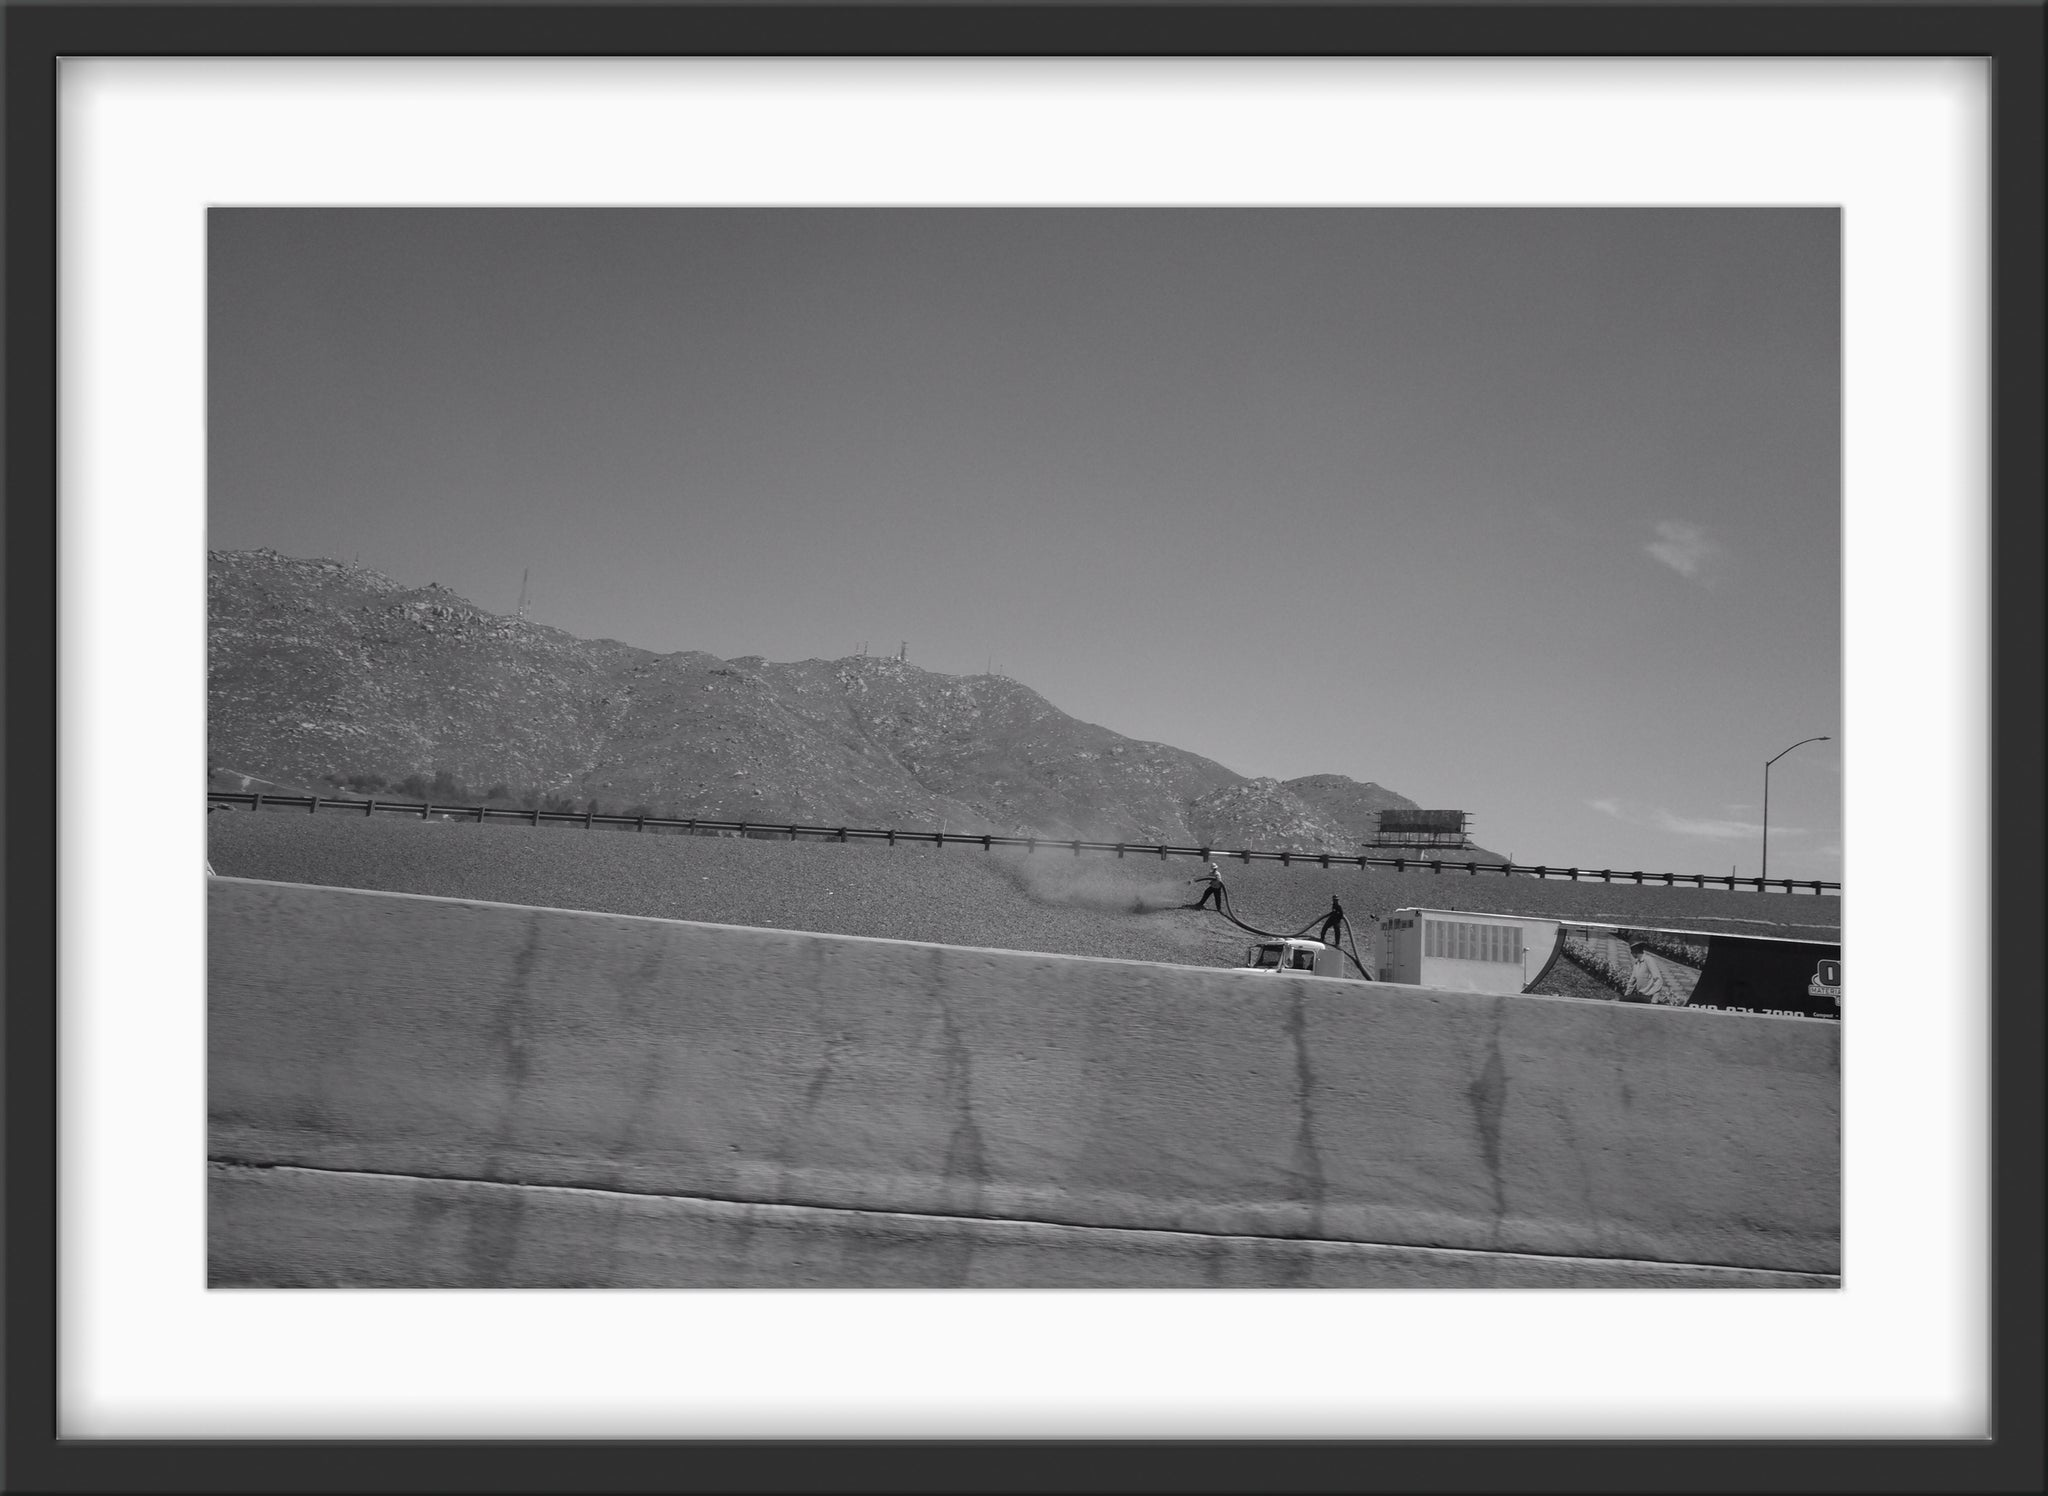 Highway Workers / Dan Wong